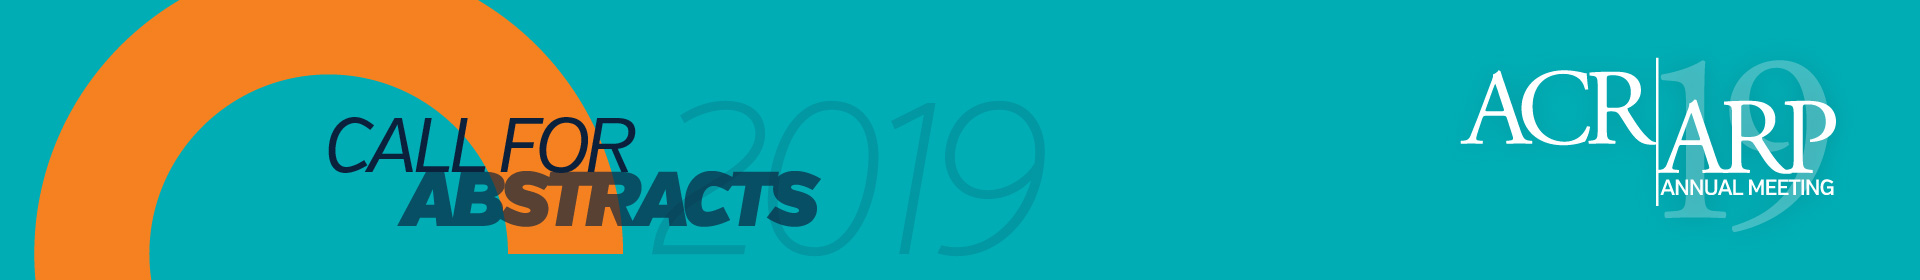 2019 ACR/ARP Annual Meeting Abstracts Event Banner